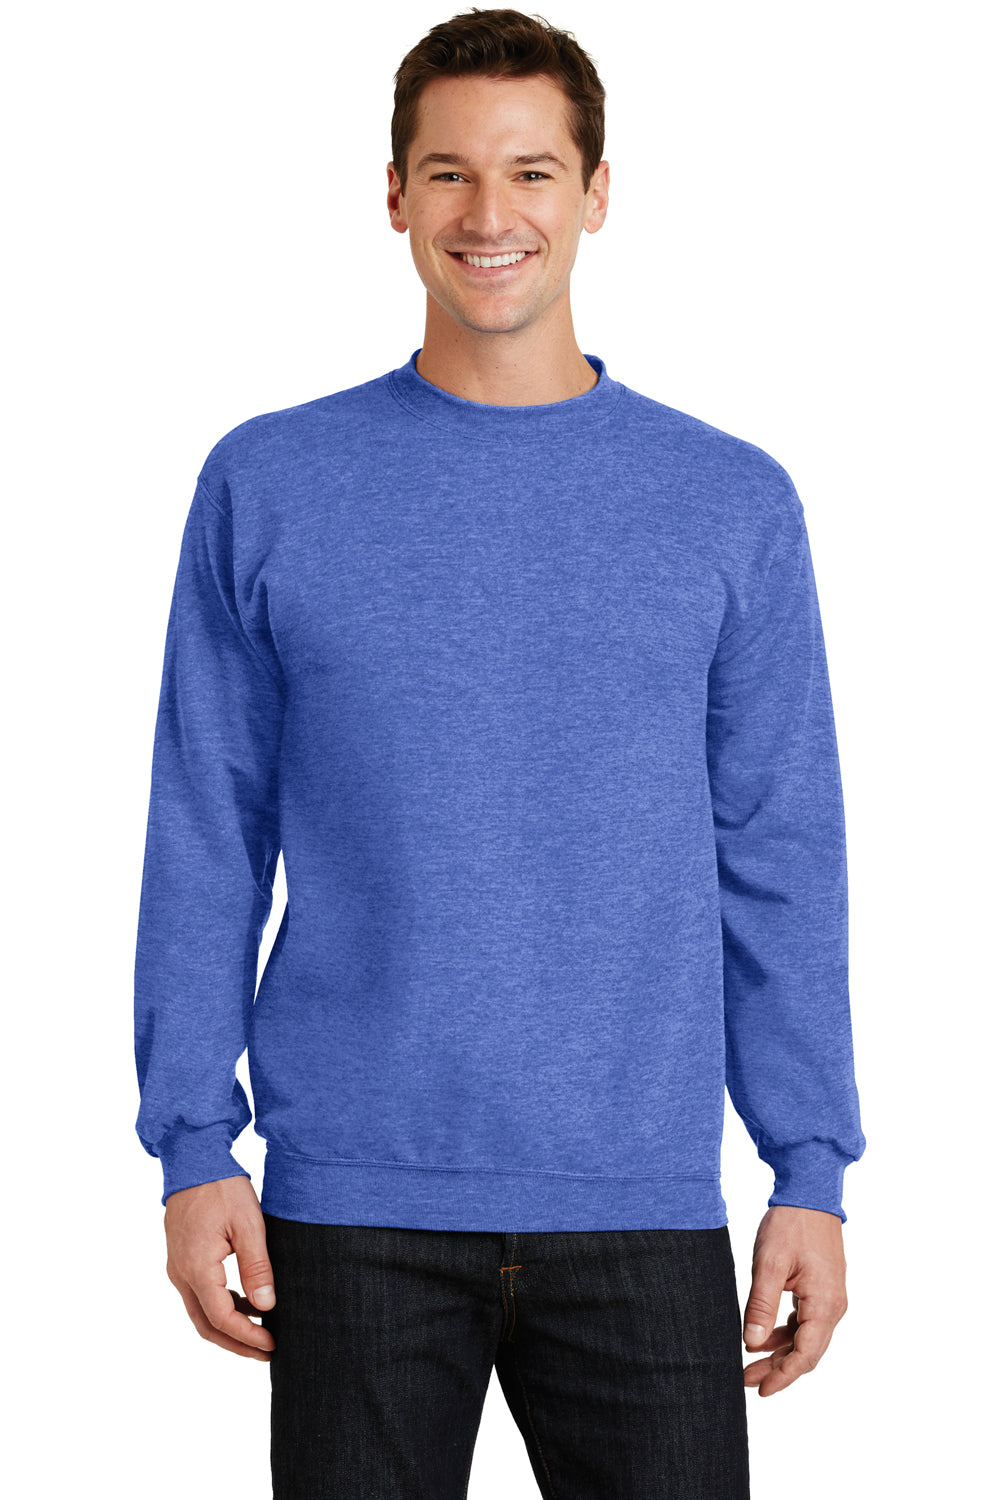 Port & Company PC78 Mens Core Fleece Crewneck Sweatshirt Heather Royal Blue Front